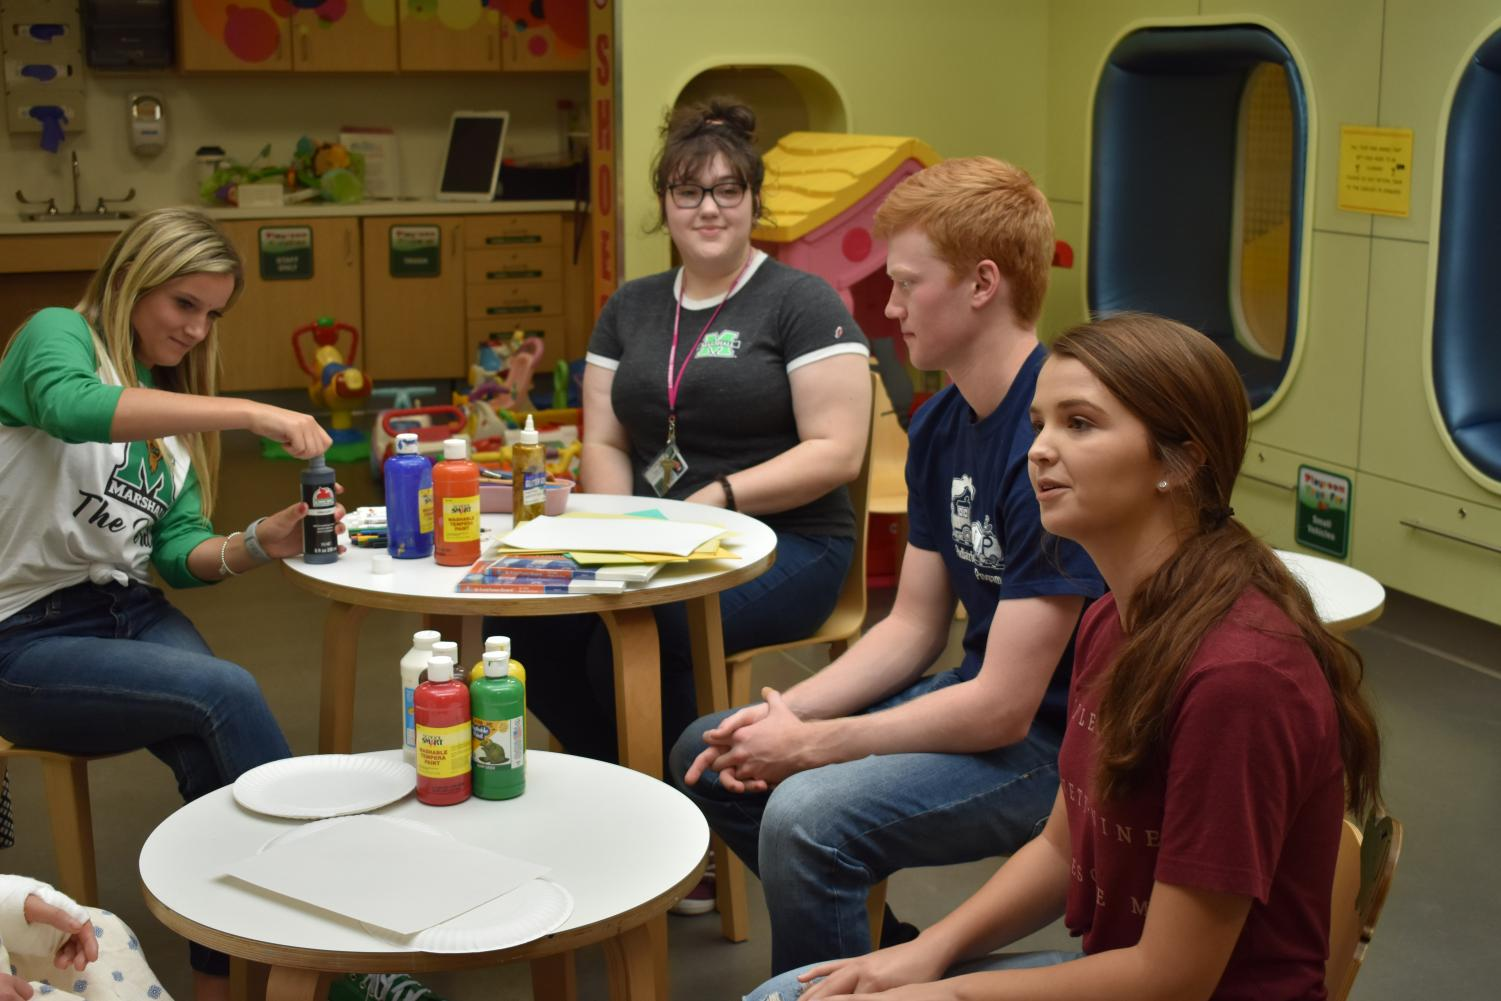 Marshall students Olivia Hart, Jodi Grimmett, Kaden Thomas and Caroline Foreman prep an activity with direction from one of the children.